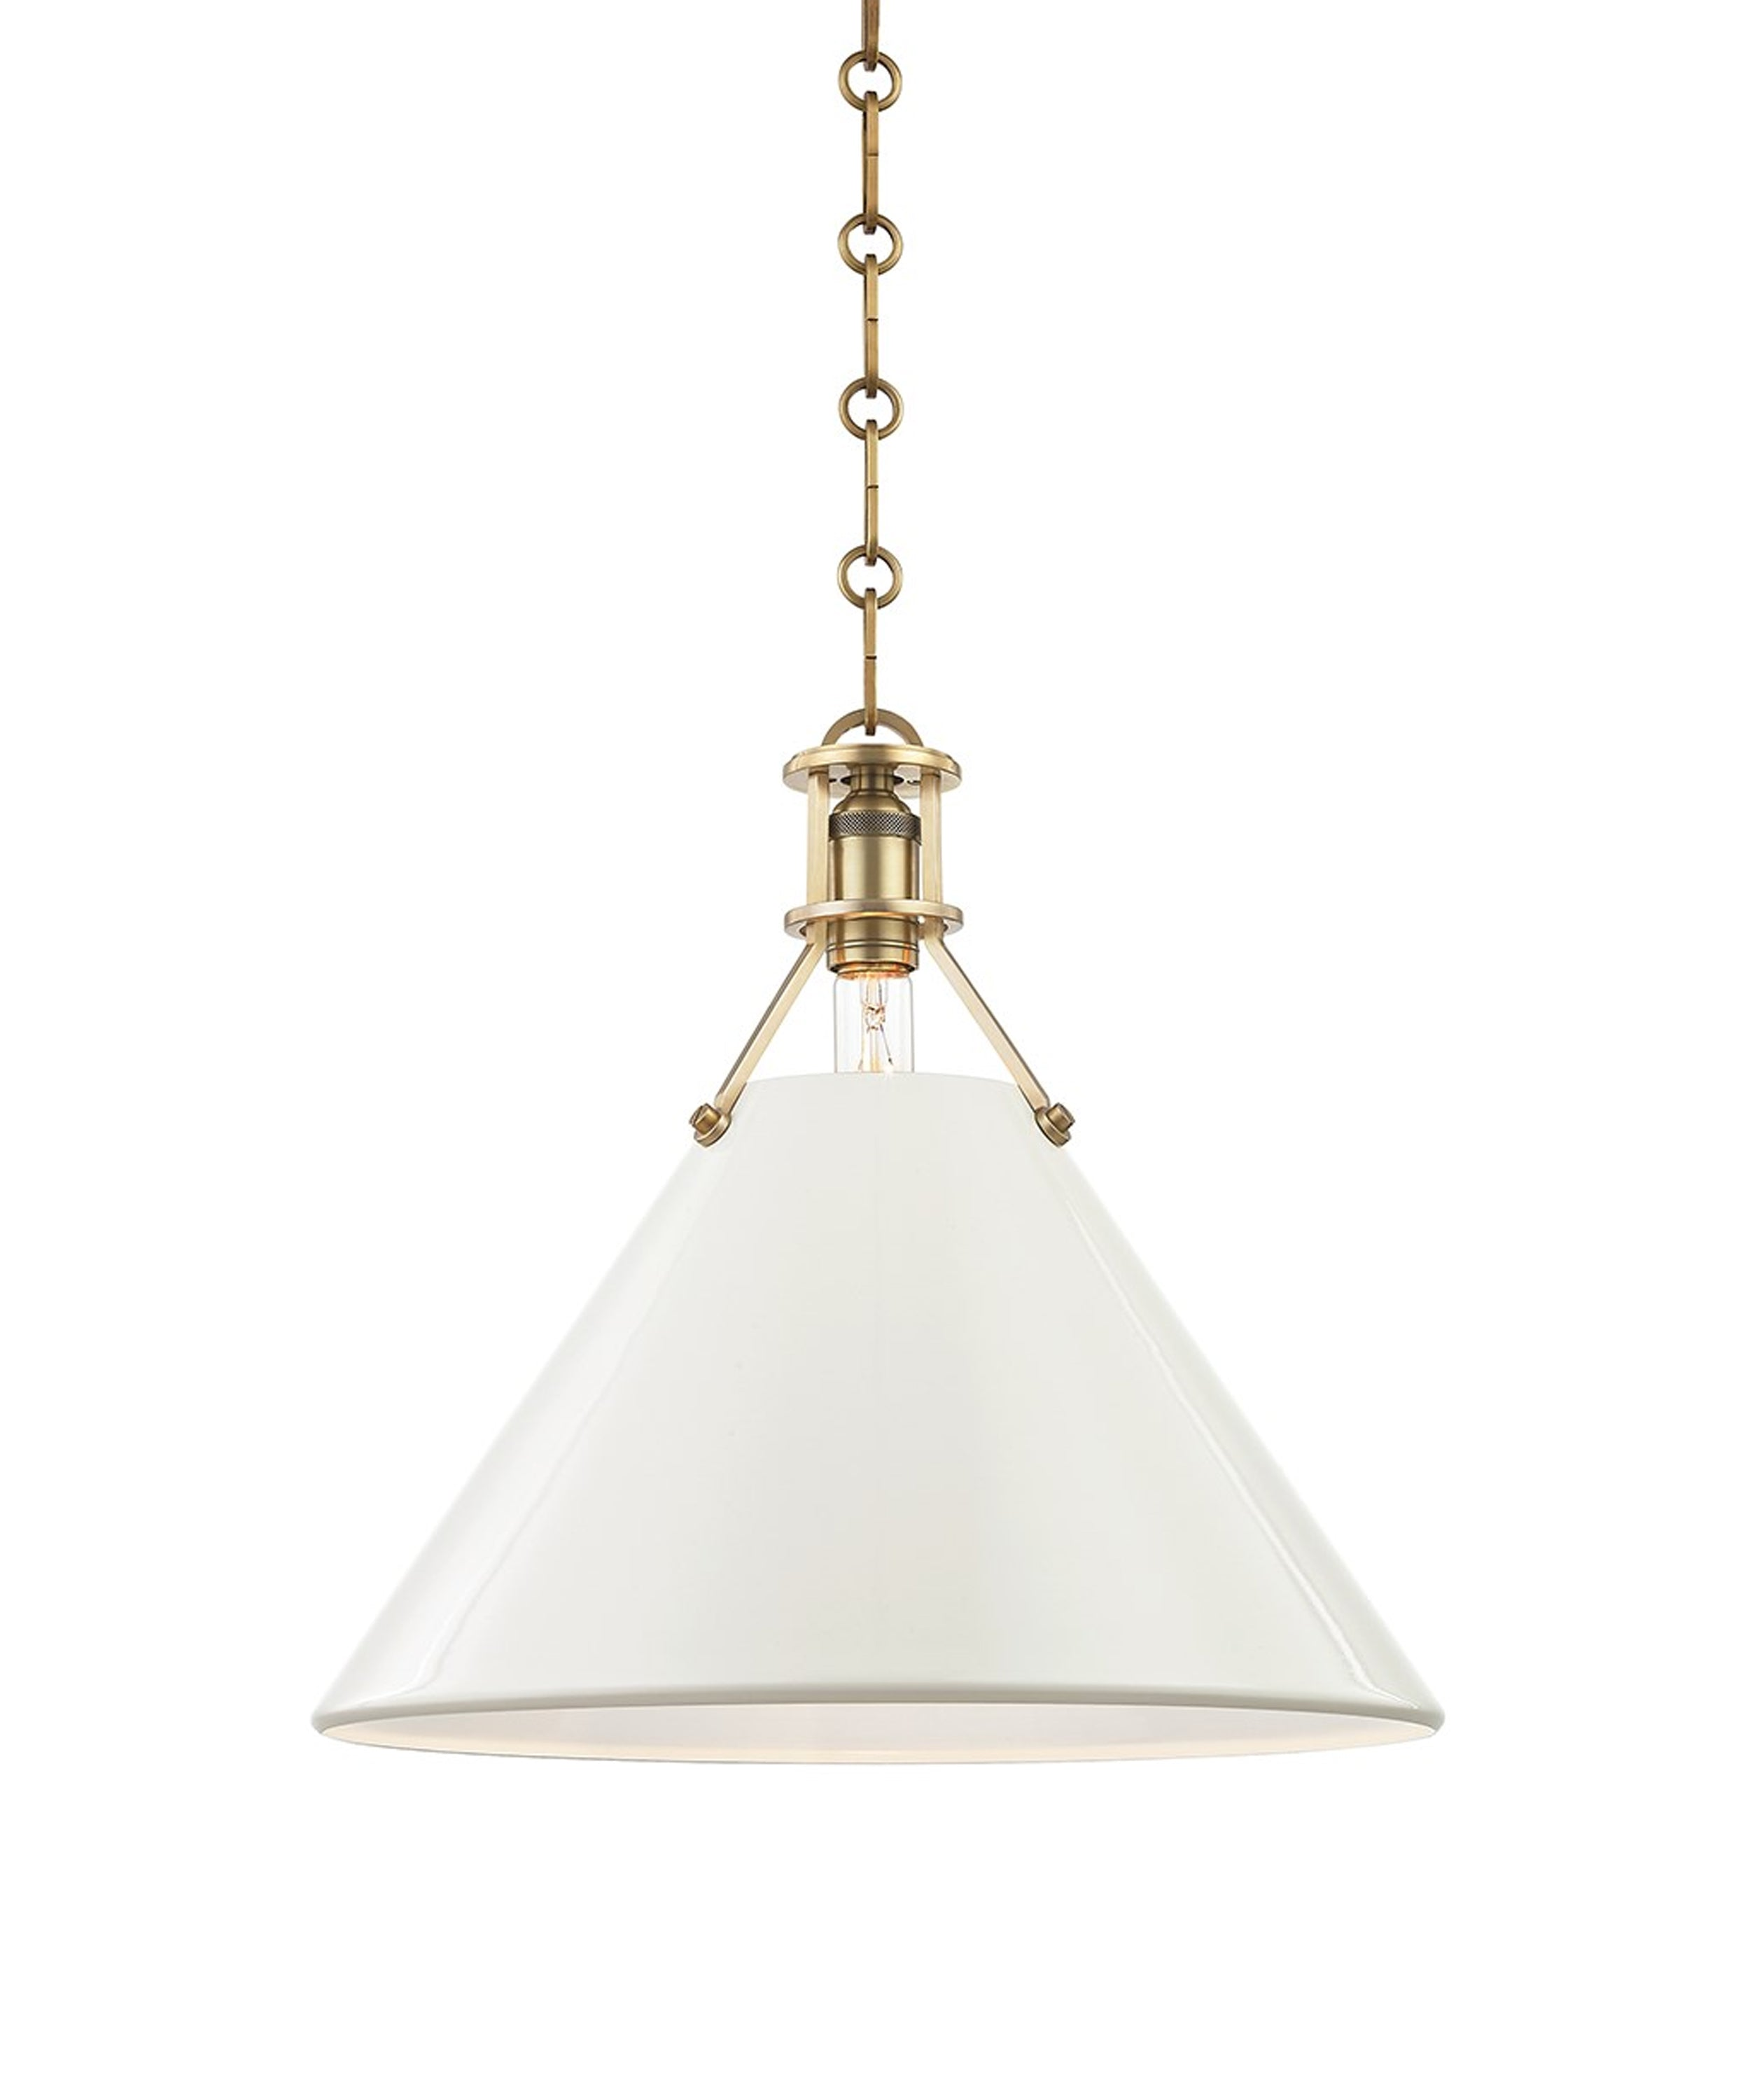 Large Painted No. 2 Pendant, Aged Brass with White Shade